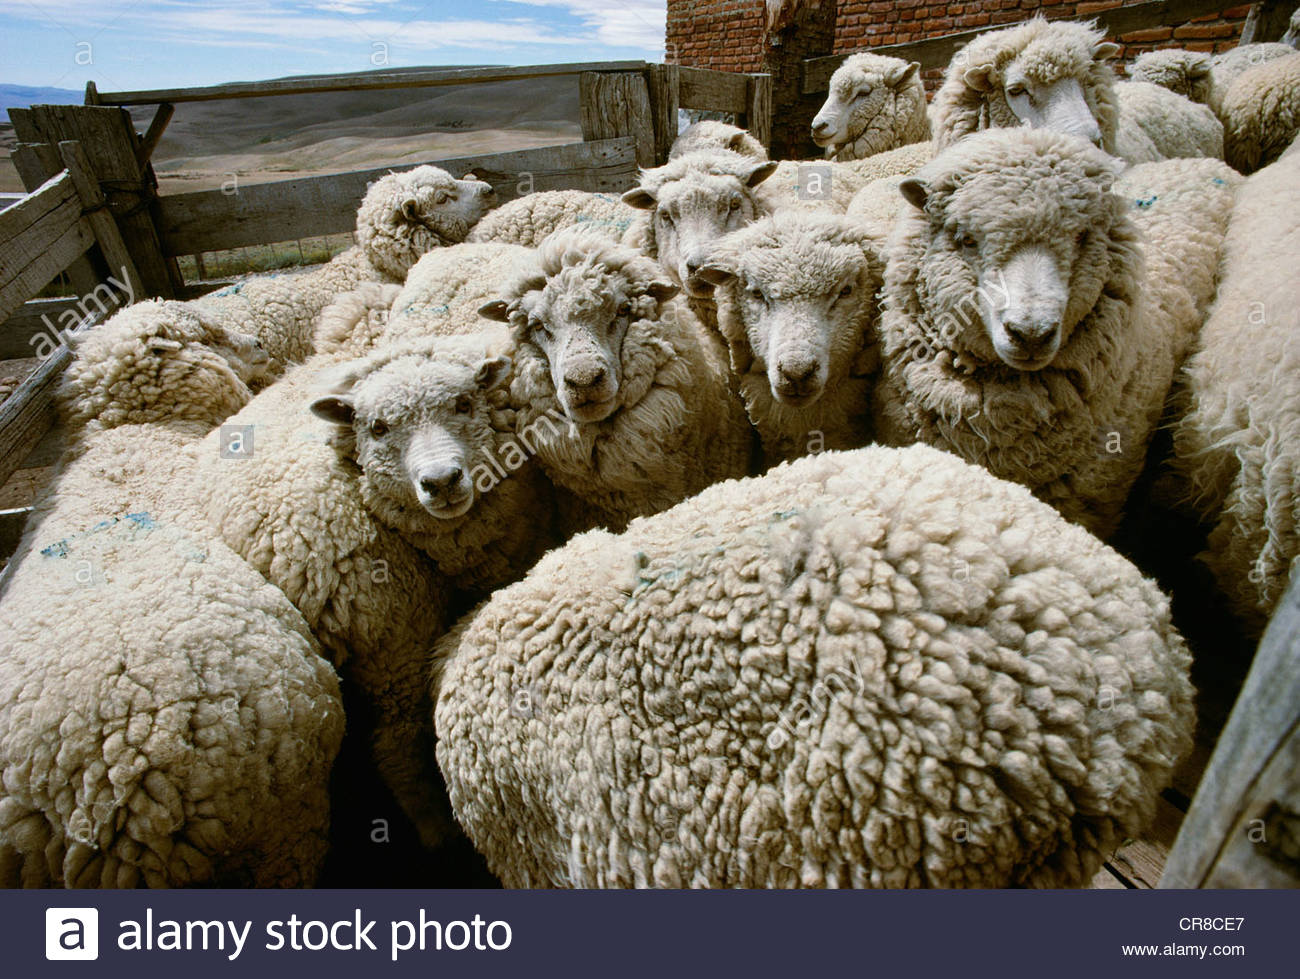 Sheep in holding pens for shearing, Patagonia, ArgentinaStock Photo